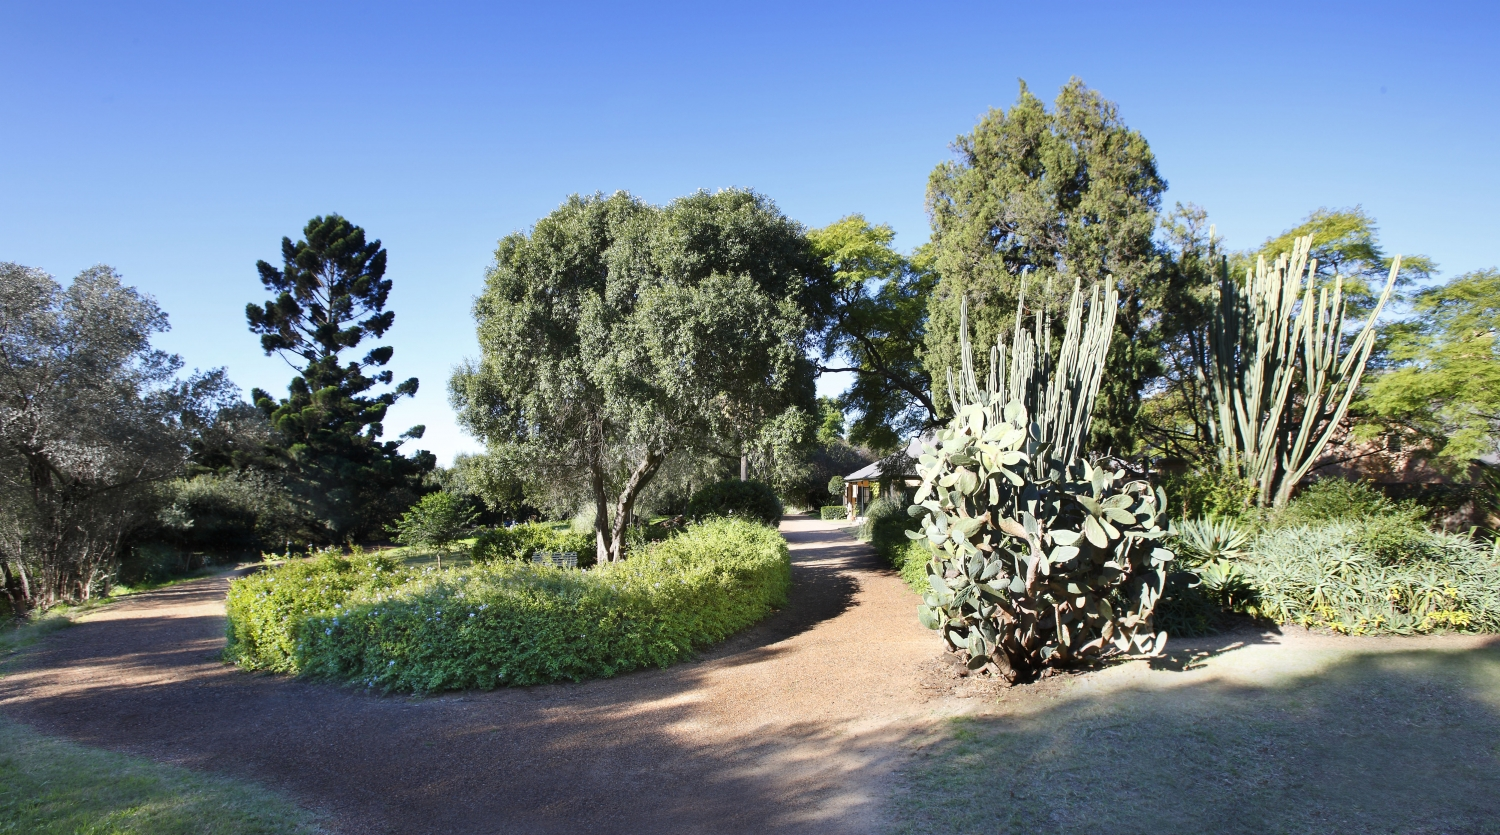 Colour photograph of a curving gravel driveway with cactus garden, shrubs and trees, with glimpses of the house visible through the foliage.